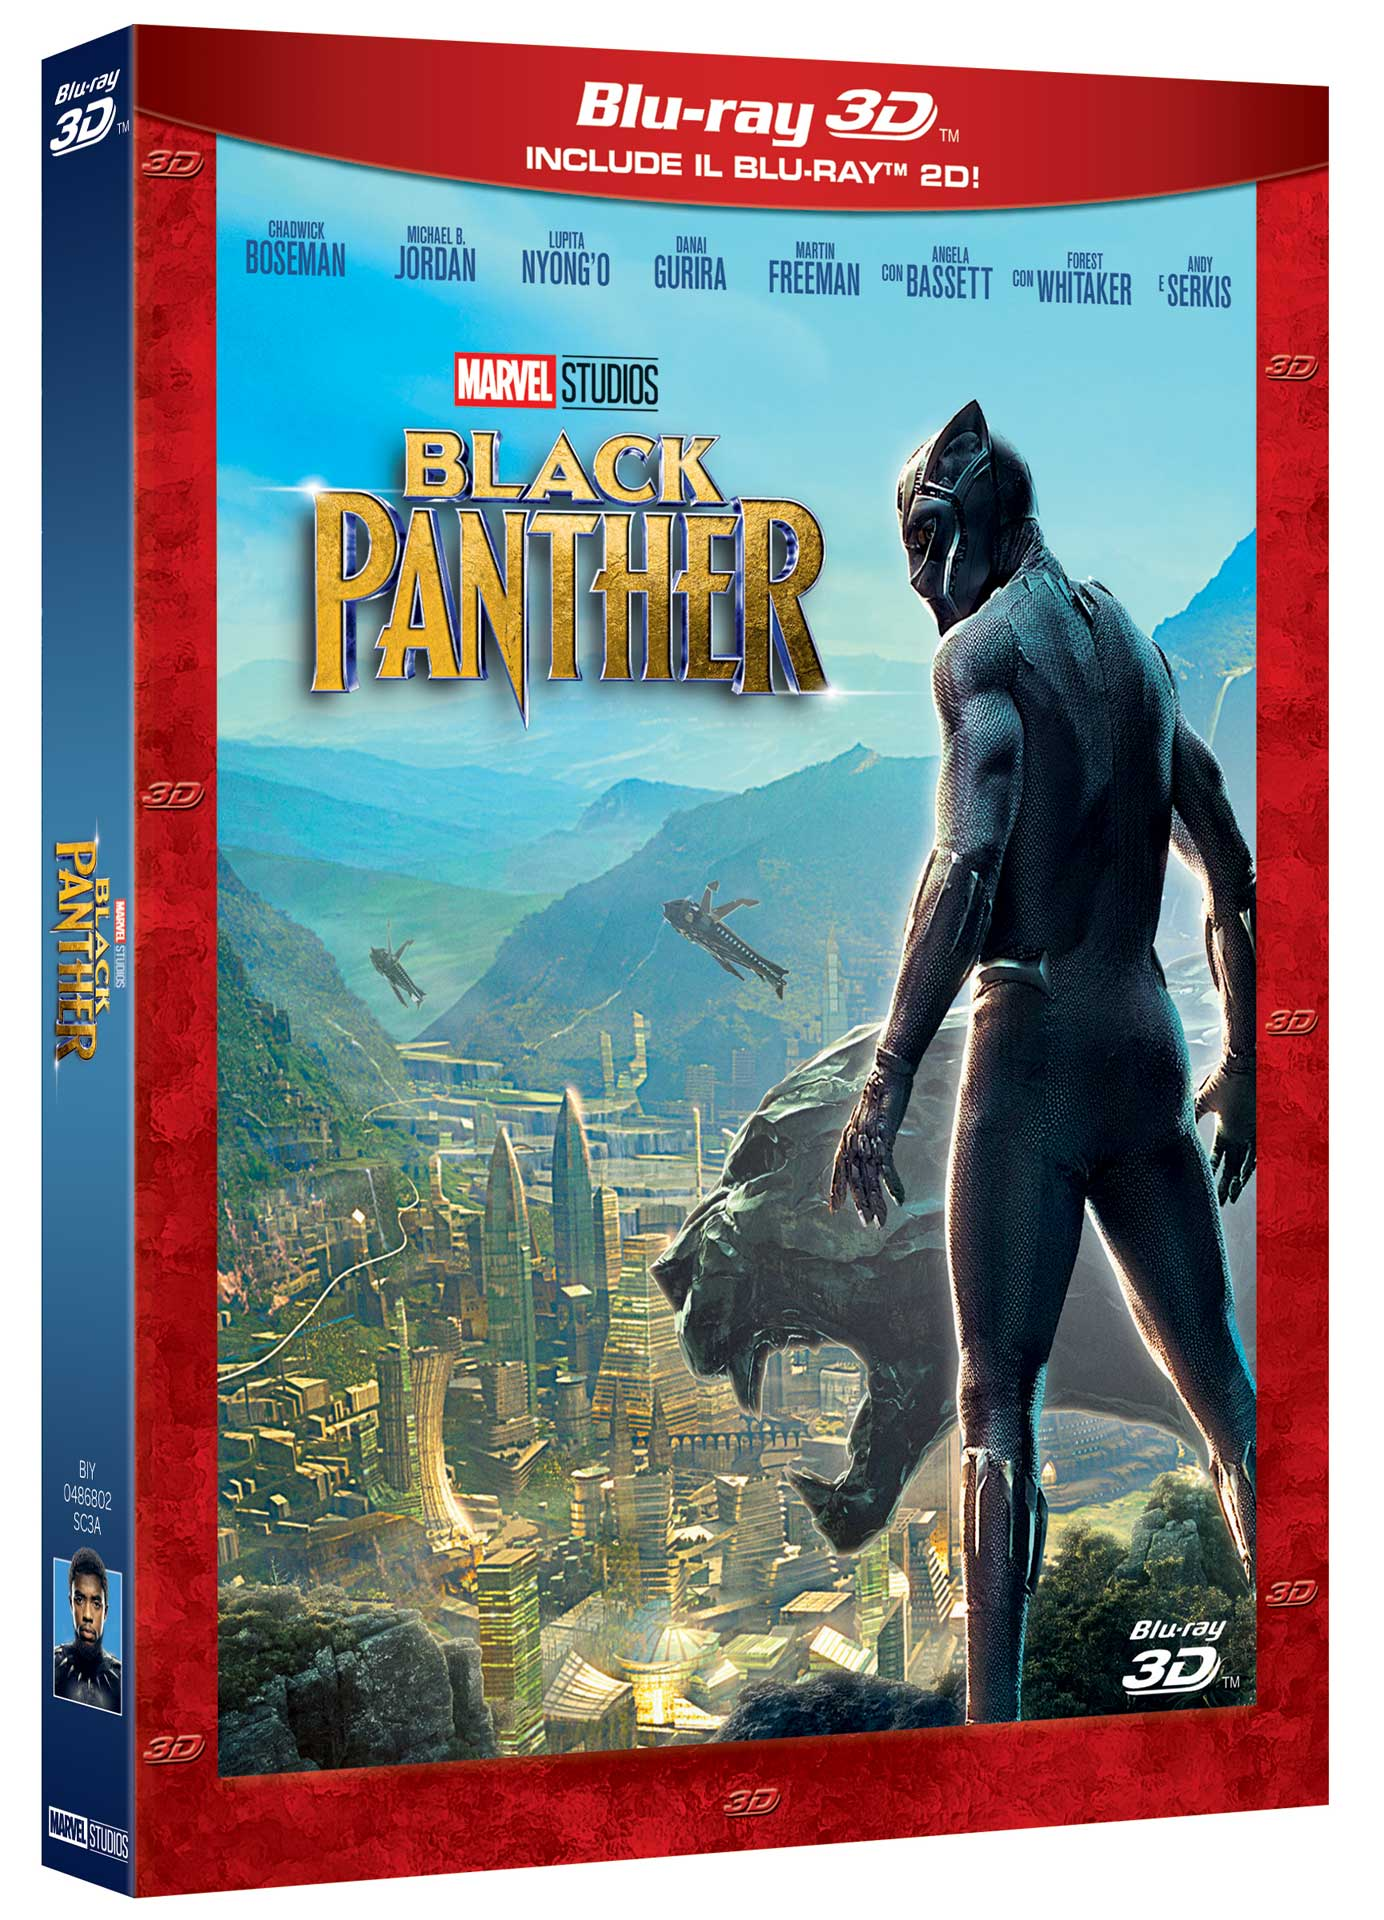 BLACK PANTHER (3D) (BLU-RAY 3D+BLU-RAY)